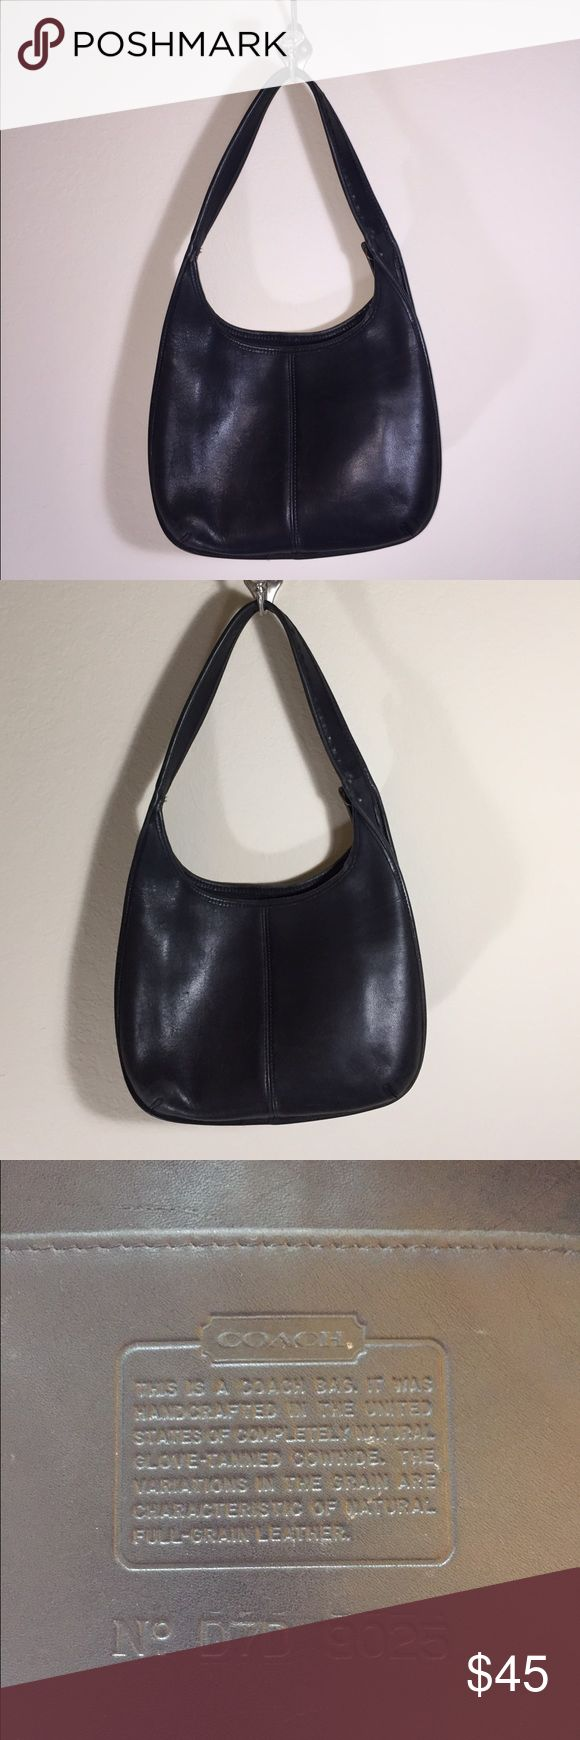 """Coach Leather Black Purse Good pre-loved condition. Showing some wear on the bottom corners. Very soft leather. Length - 12"""" 🔅 Height - 9"""" 🔅 Width - 2"""" Coach Bags Shoulder Bags"""